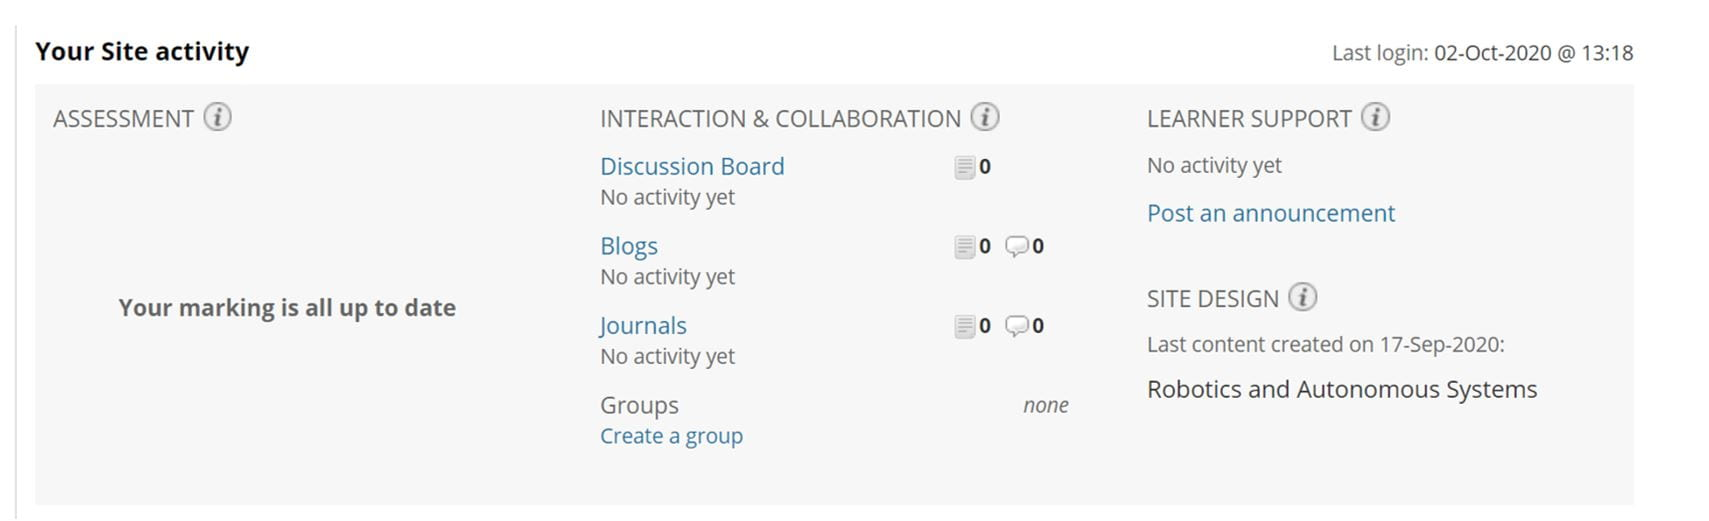 Screenshot of the Your Site Activity area of Retention Centre.